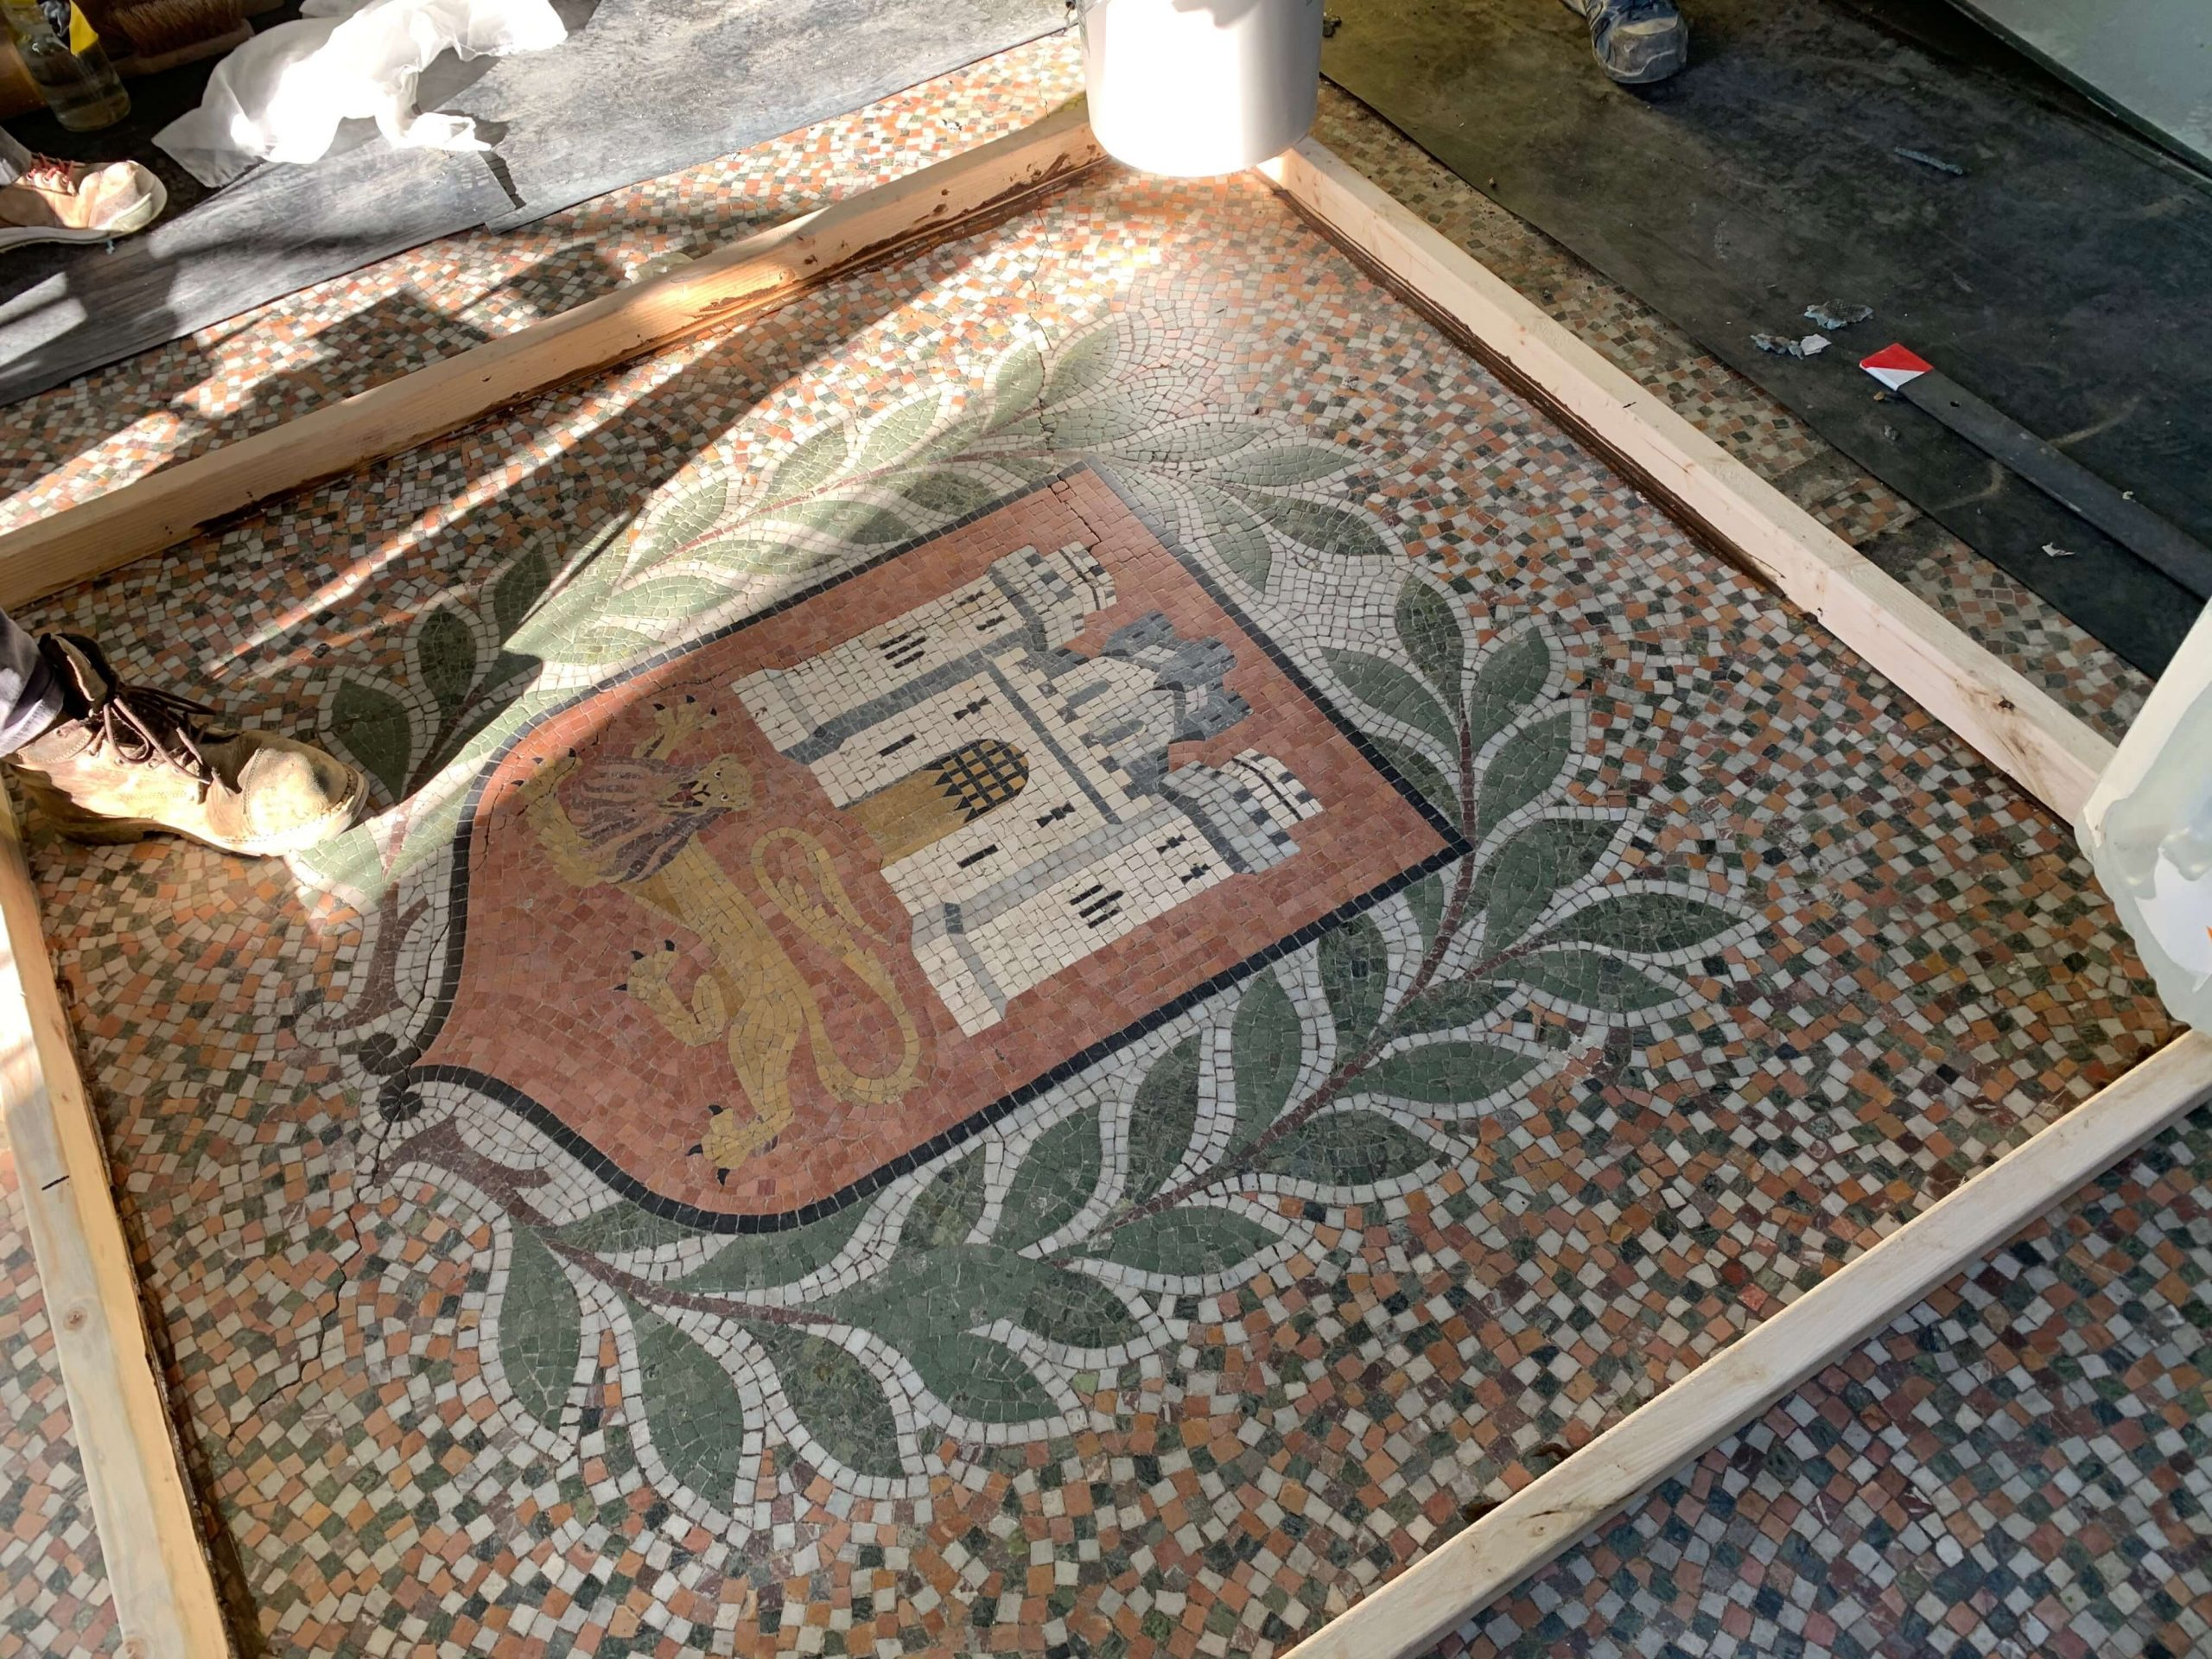 Large floor marble mosaic crest carefully removed this week, what this space to see its progress in the workshop.